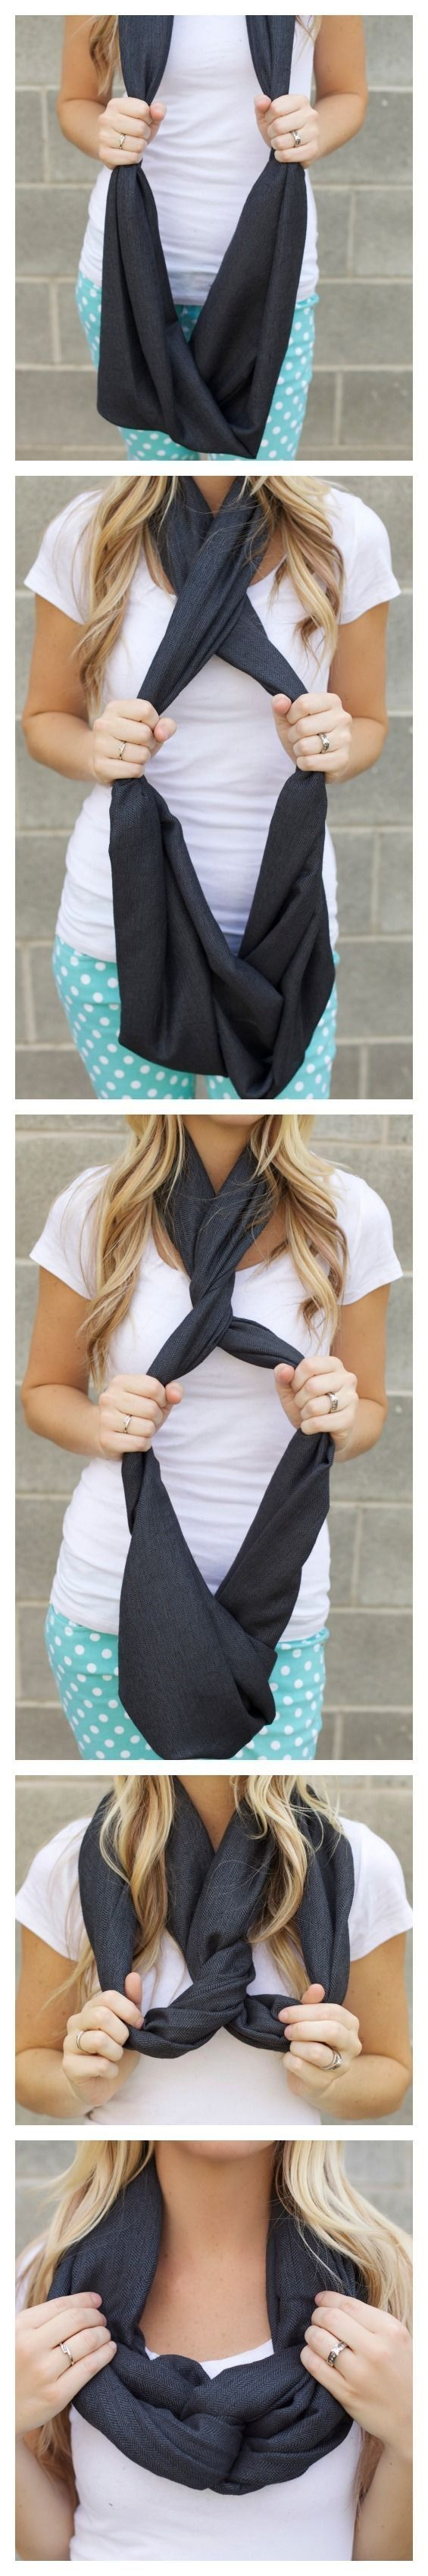 another way to tie an infinity scarf fashion